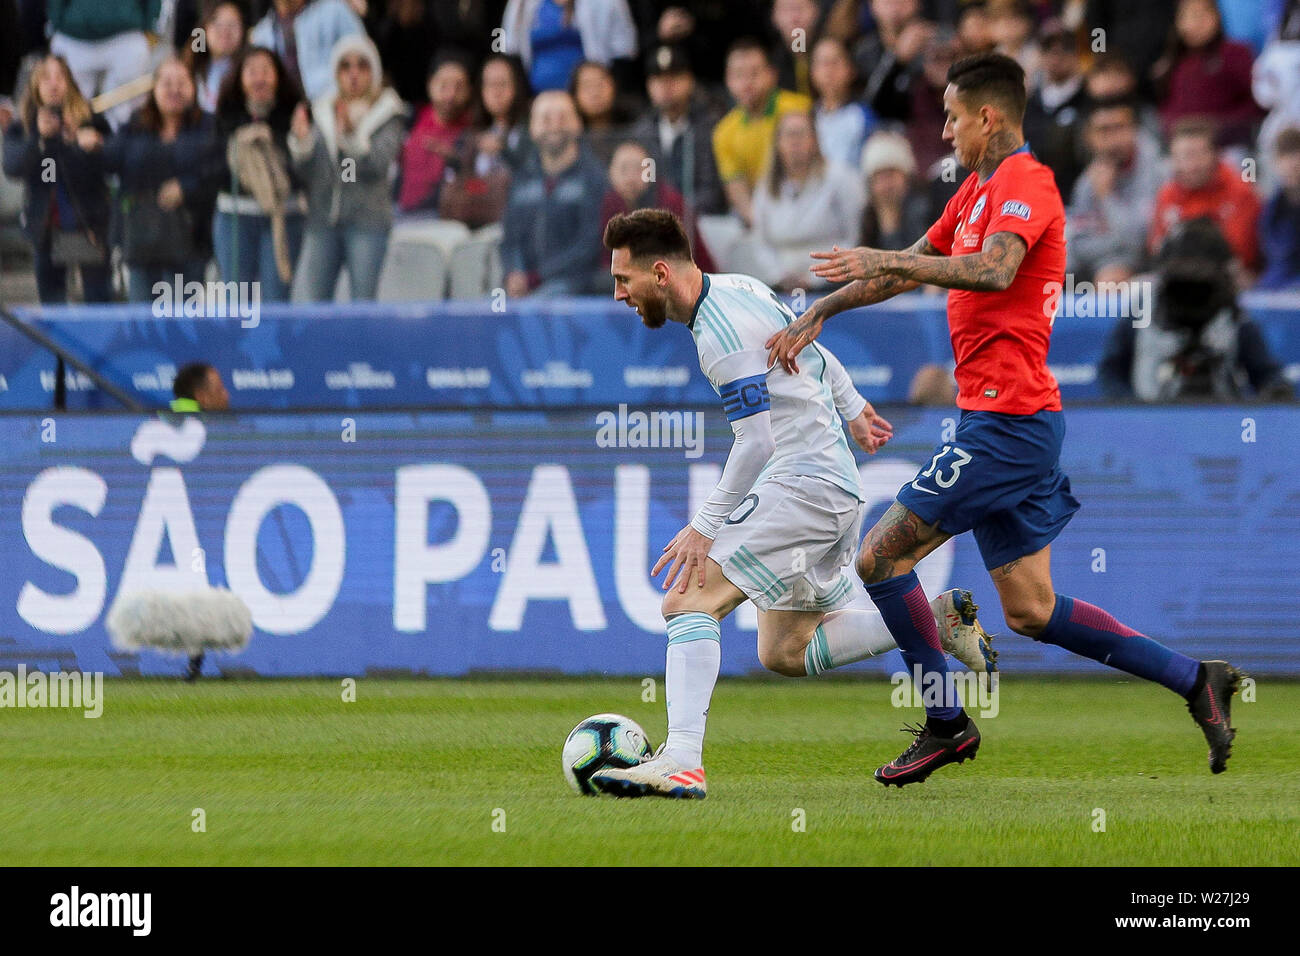 6th July 2019, Arena Corinthians Stadium, Sao Paulo, Brazil; Copa America international football, 3rd-4th playoff final, Argentina versus Chile; Lionel Messi of Argentina and Erick Pulgar of Chile challenge for the ball - Stock Image